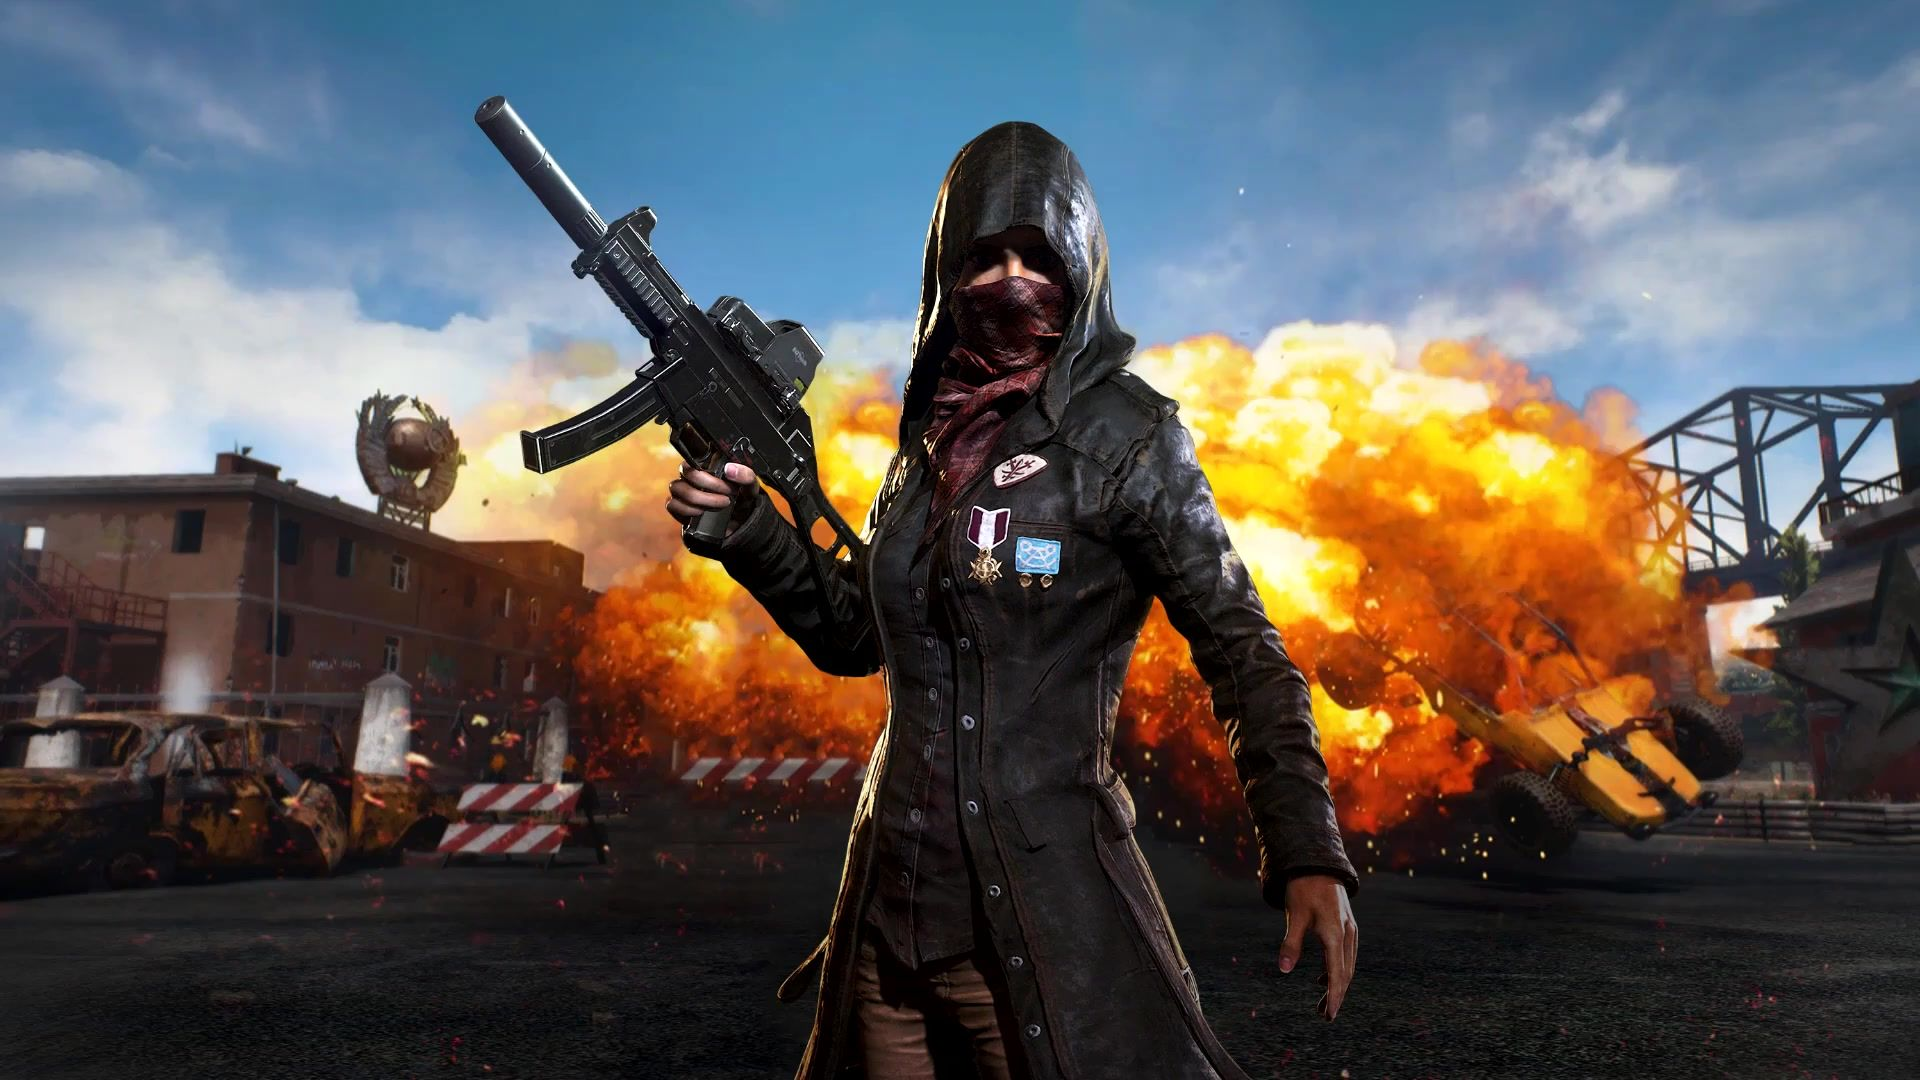 470+ Download Wallpaper Hp Pubg Hd Gratis